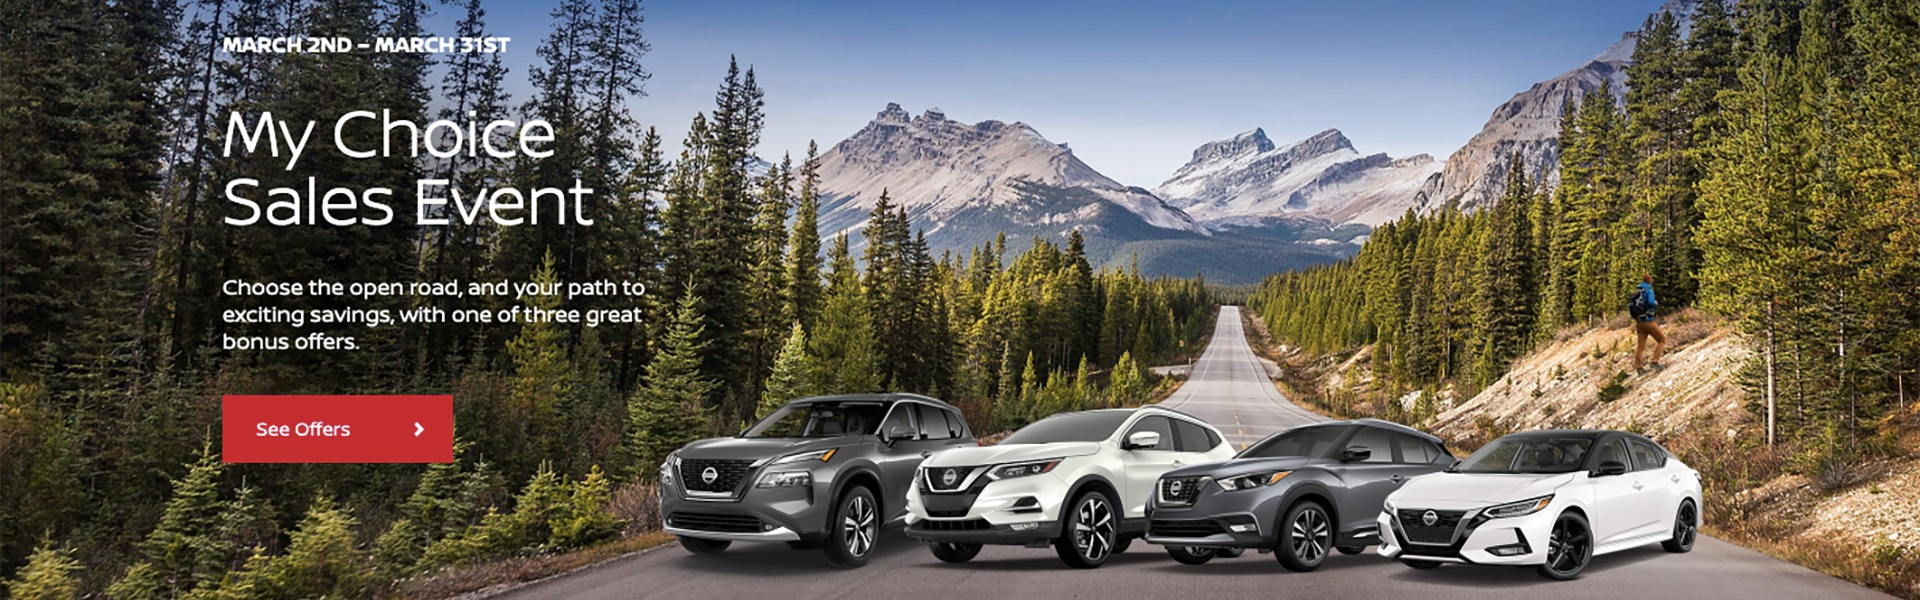 nissan-march-offers